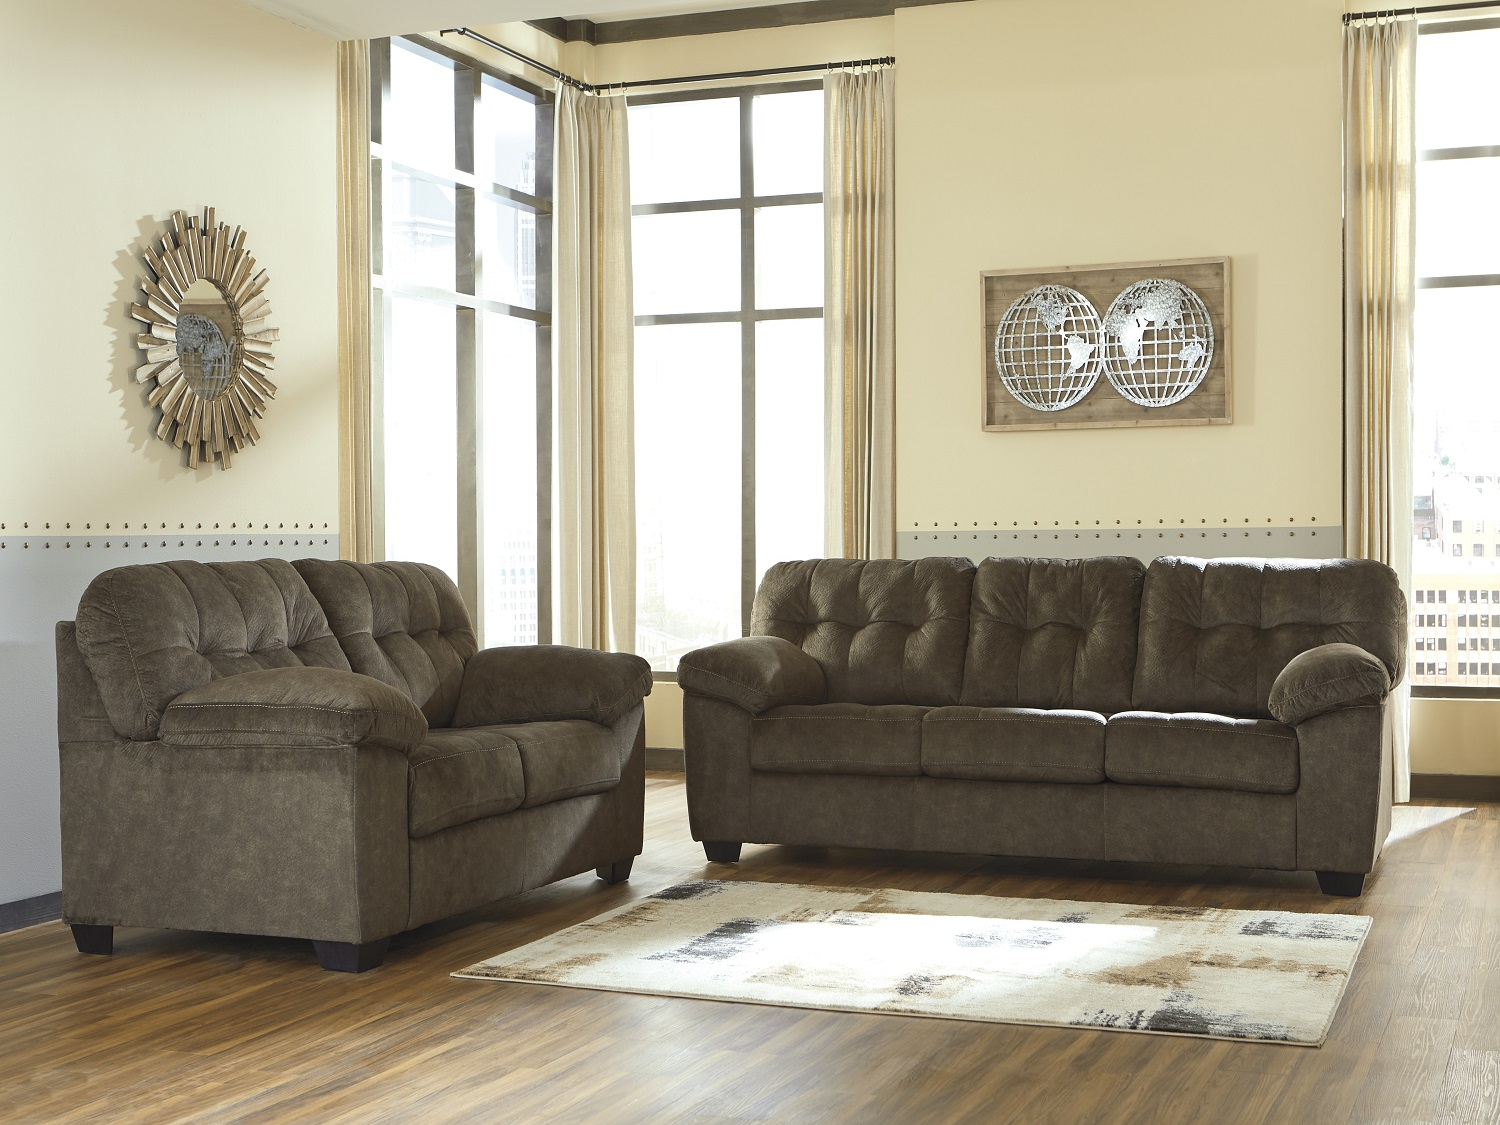 Accrington Sofa Only, 70508, Sofa Sets by Midha Furniture to Brampton, Mississauga, Etobicoke, Toronto, Scraborough, Caledon, Oakville, Markham, Ajax, Pickering, Oshawa, Richmondhill, Kitchener, Hamilton, Cambridge, Waterloo and GTA area